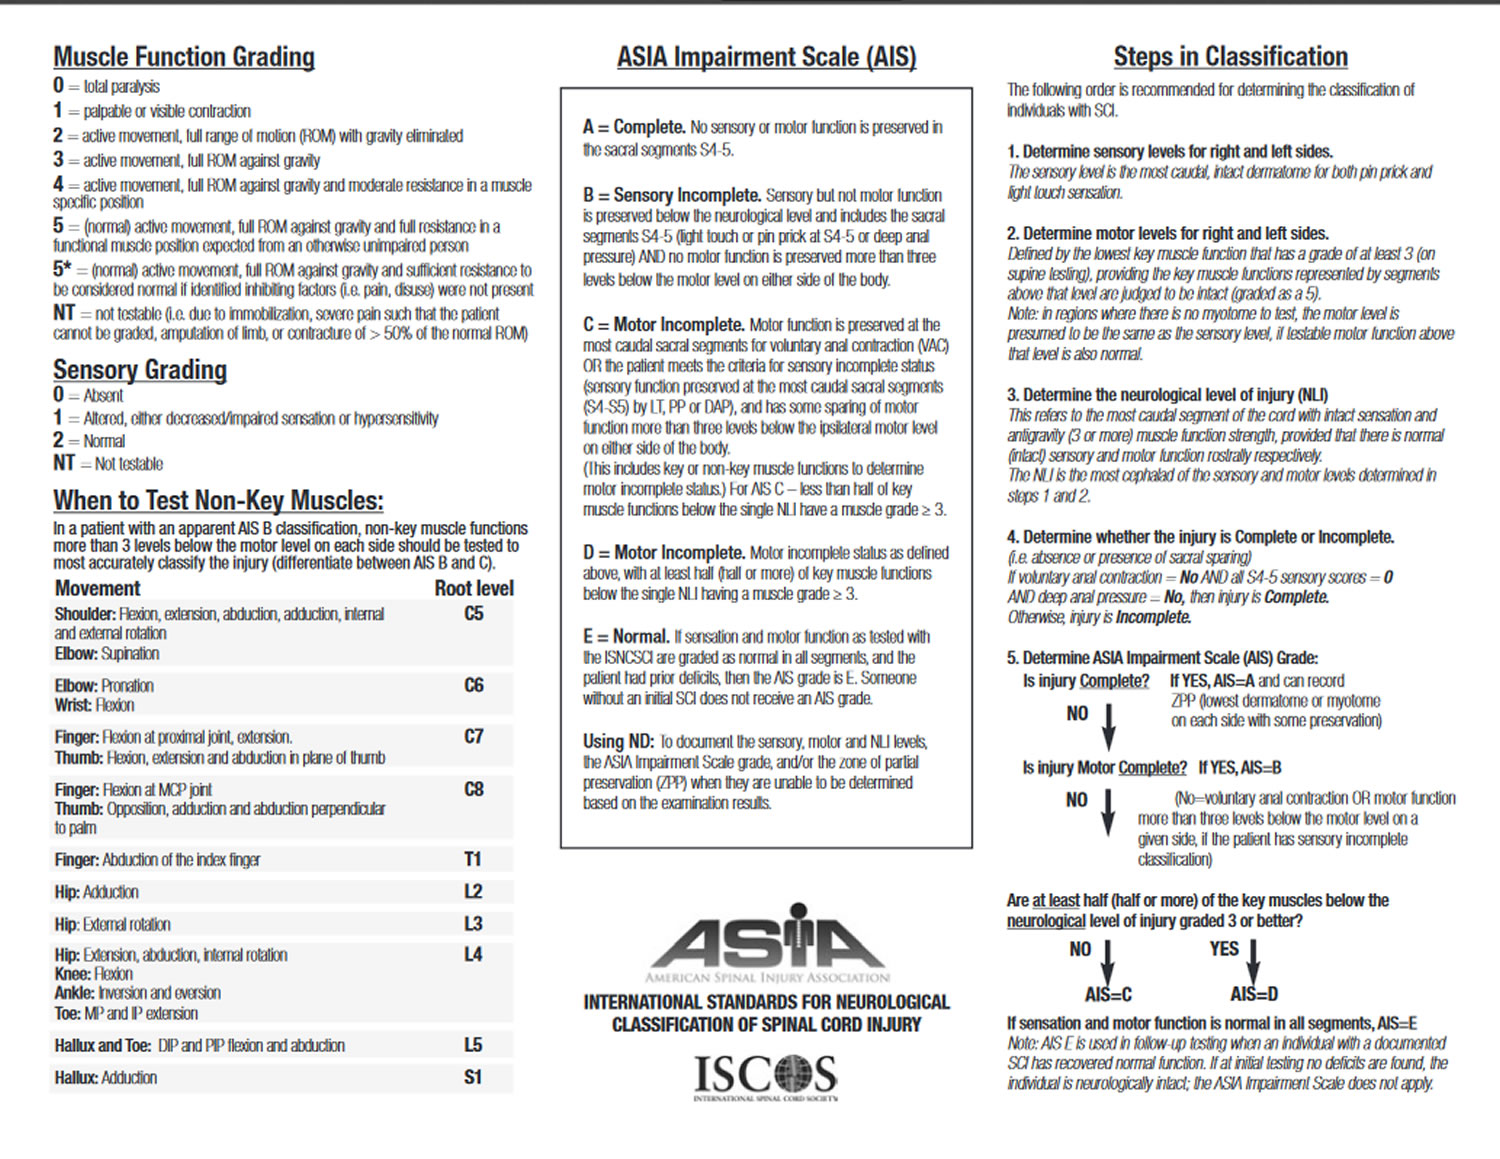 American Spinal Injury Association Impairment Scale